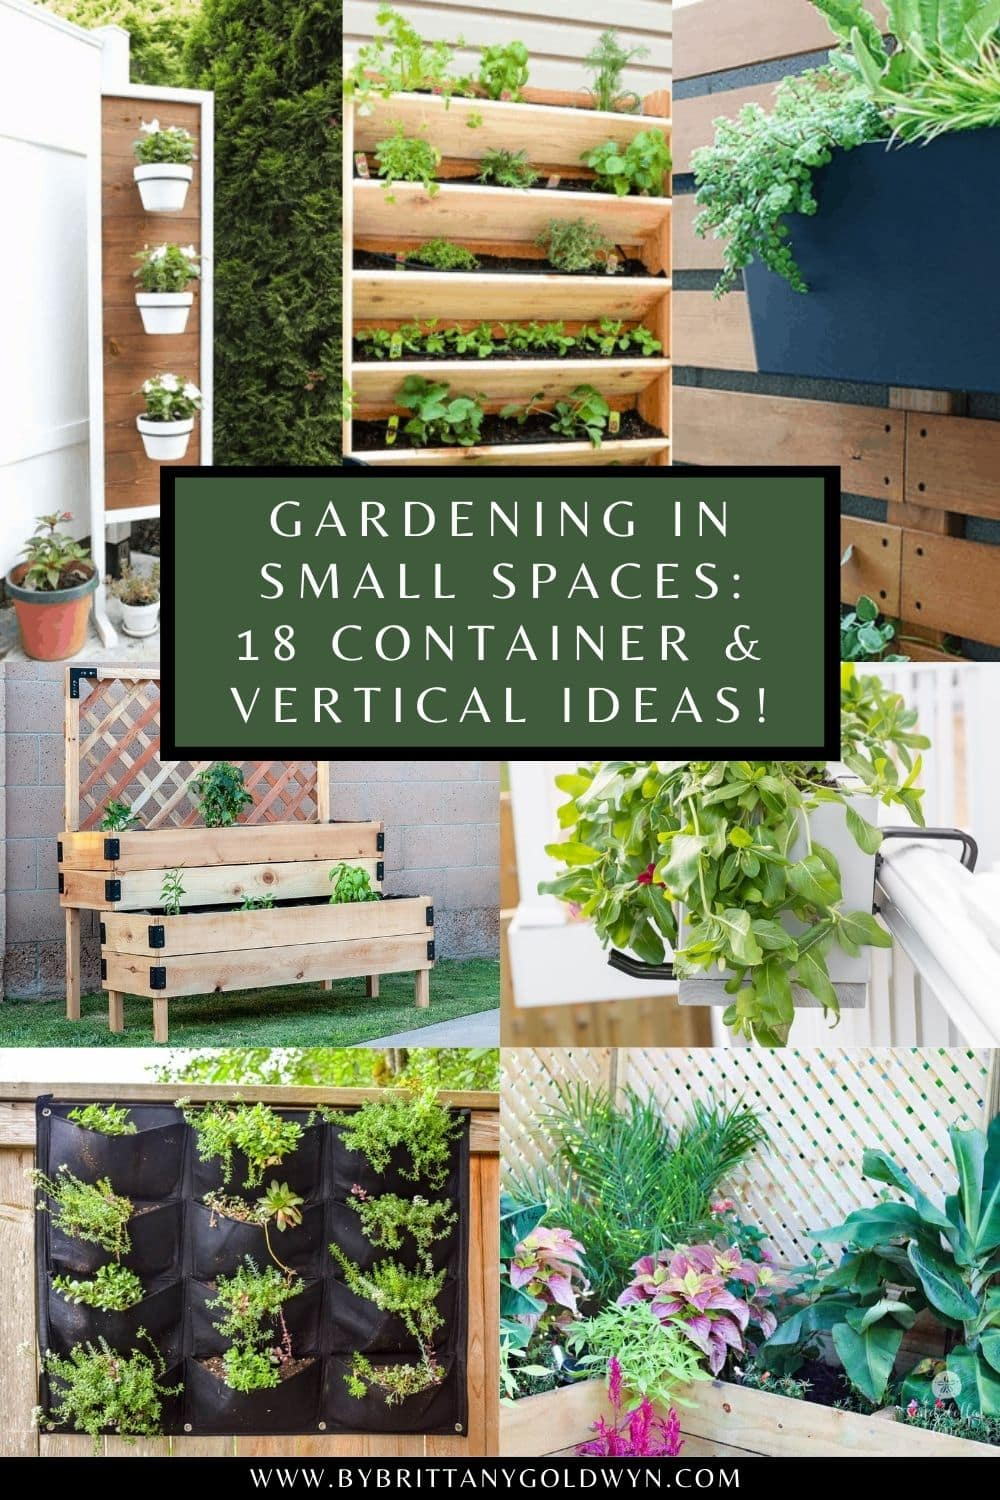 image collage with small space garden idea pics and text overlay about container and vertical gardening